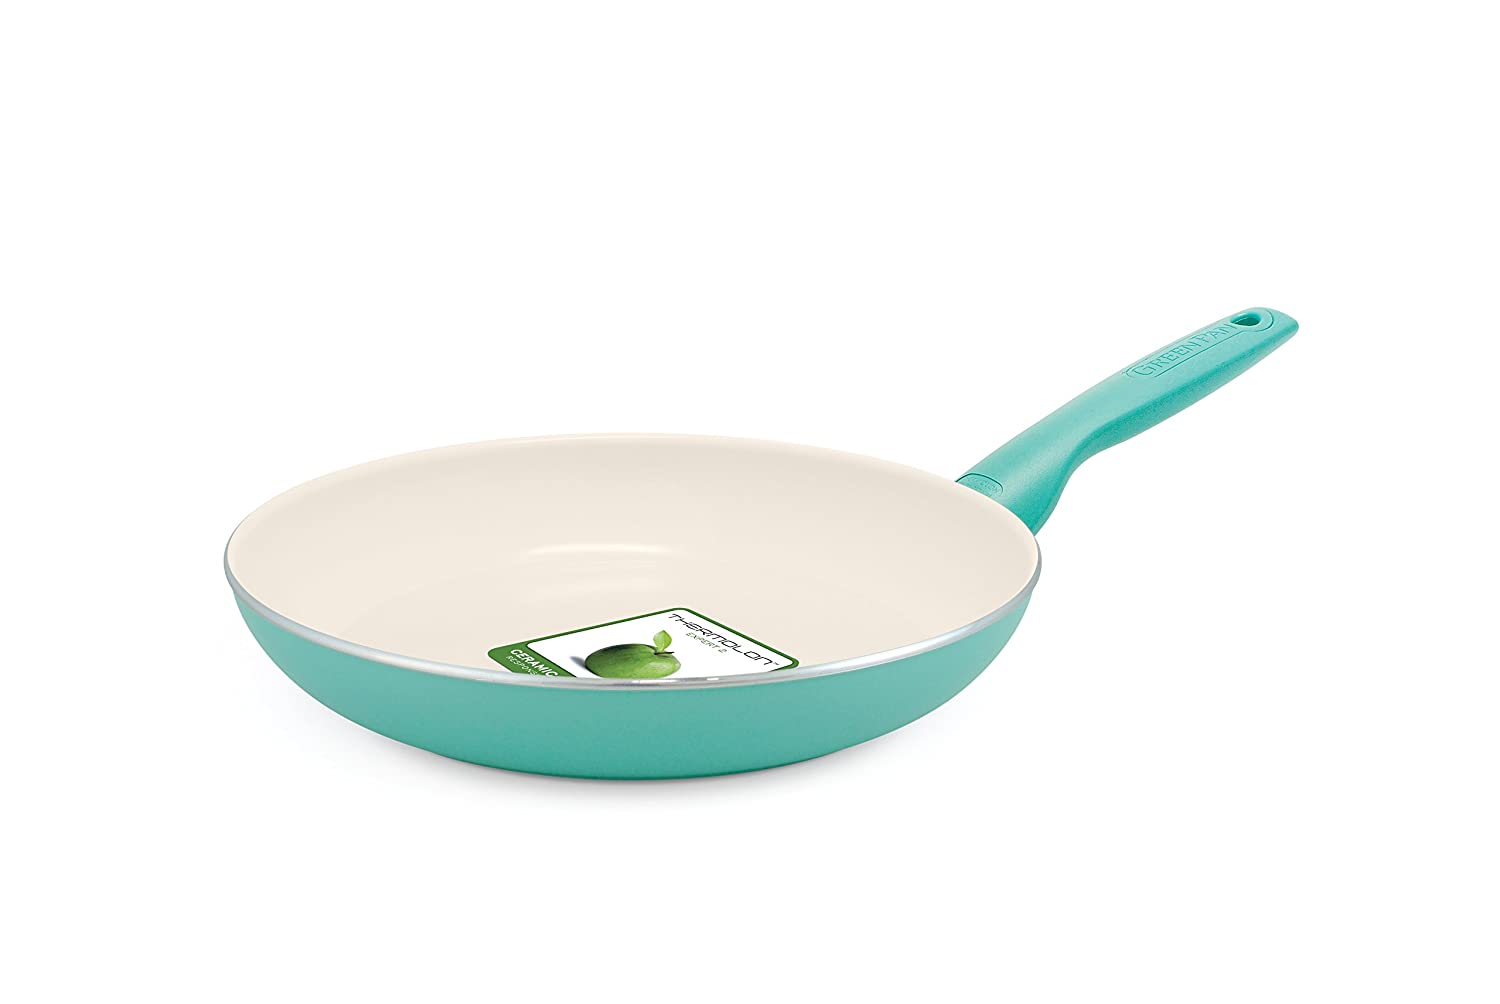 GreenPan Rio 8 Inch and 10 Inch Ceramic Non-Stick Fry Pan Set, Turquoise The Cookware Company CW001419-002